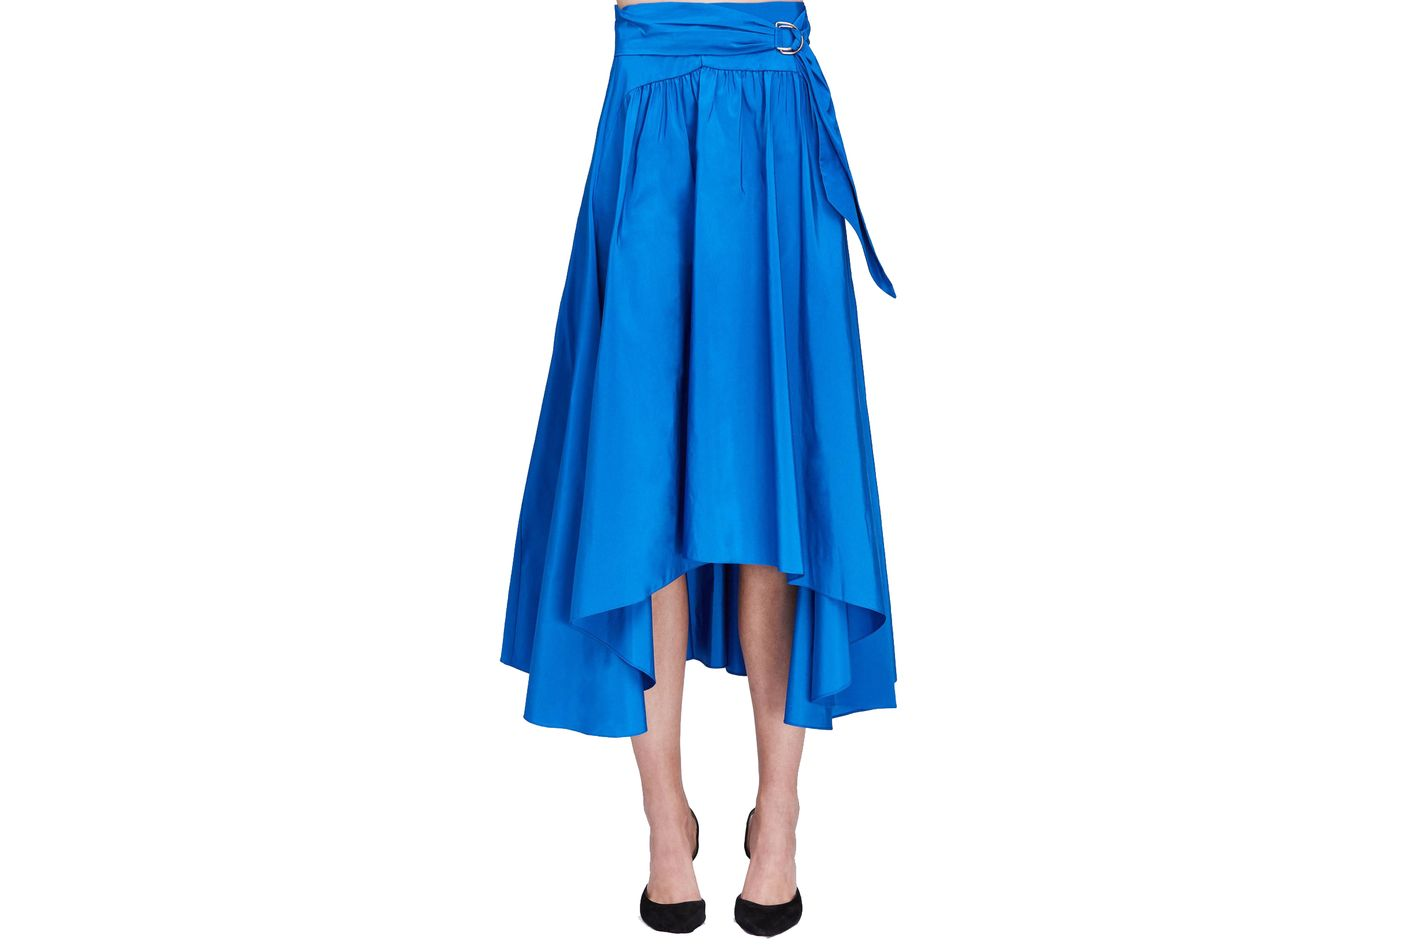 Peter Pilotto Taffeta Skirt